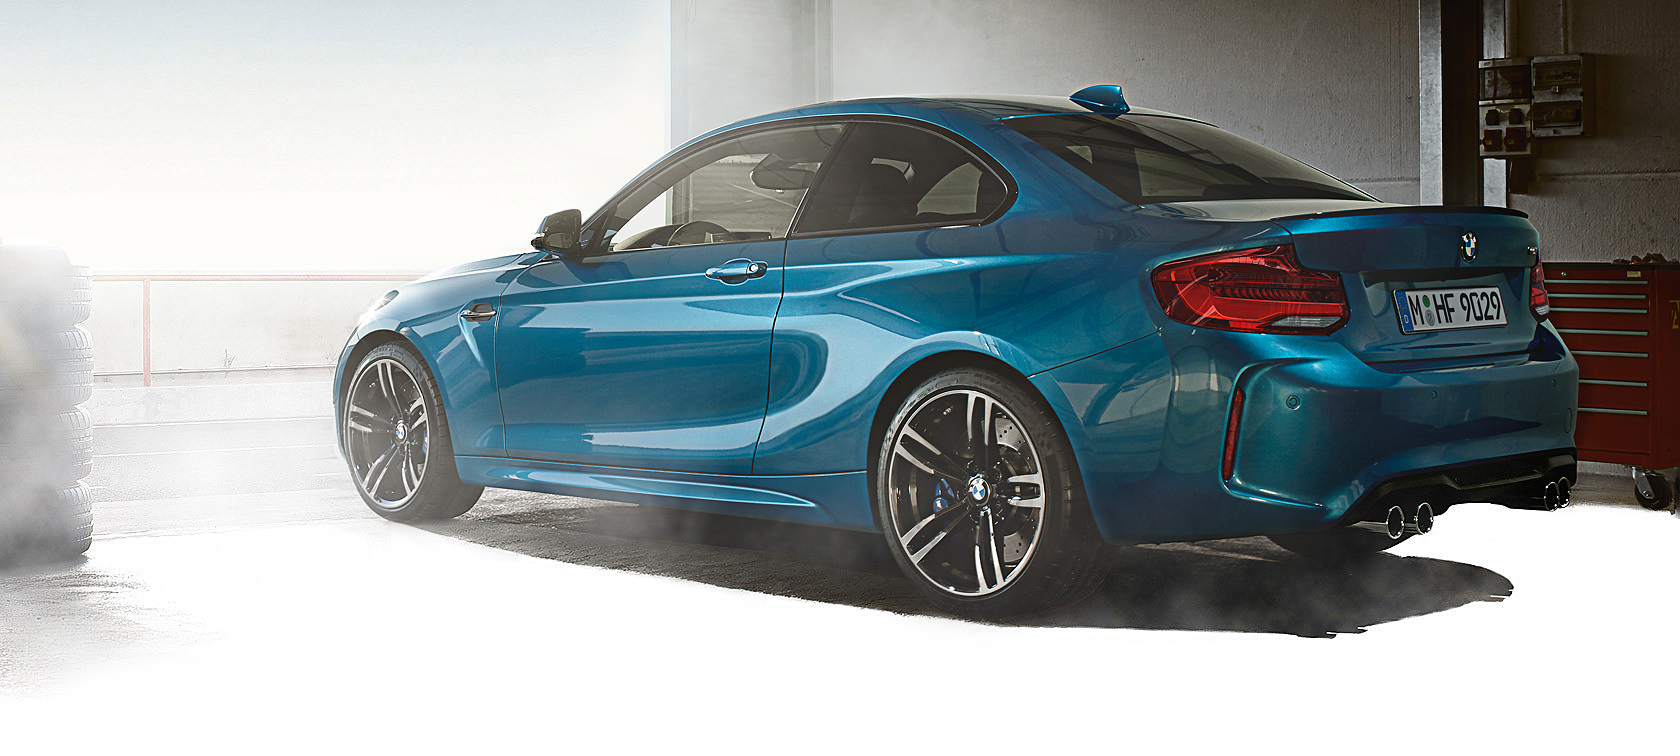 The design of the BMW M2 Coupé